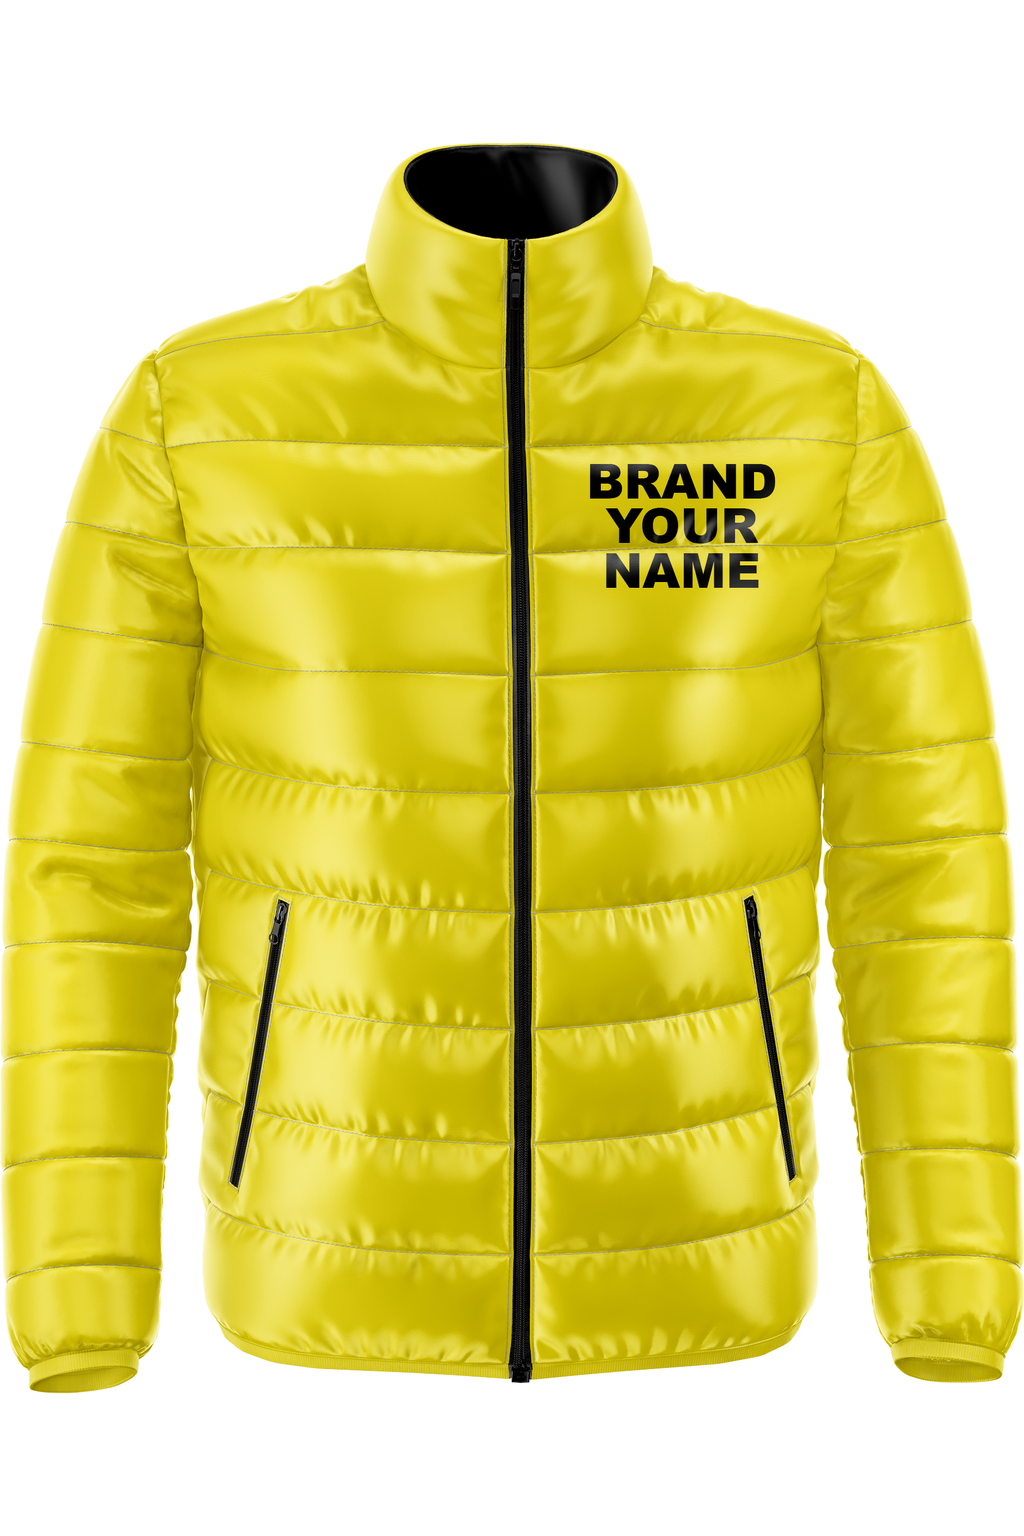 Custom Zipper Puffer Jackets Preorder (Production Starts 8/20/20)